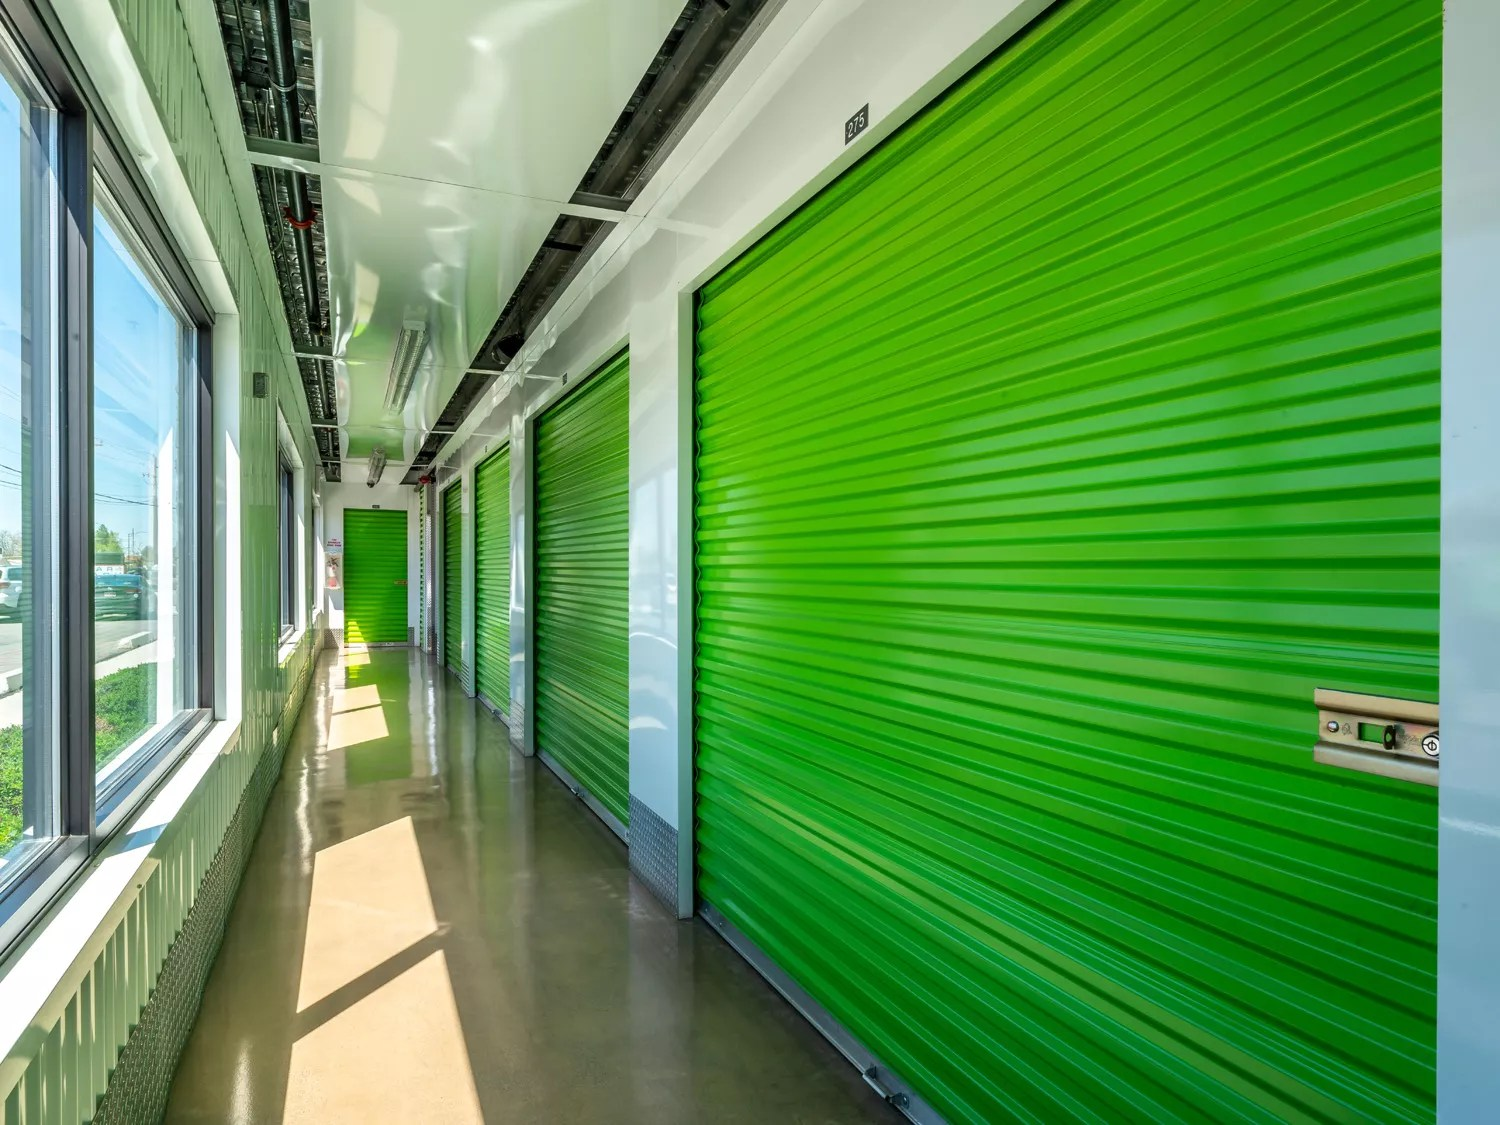 View down a hallway of an Extra Space Storage facility; hallways is clean, well-lit, and has bright green garage-like doors